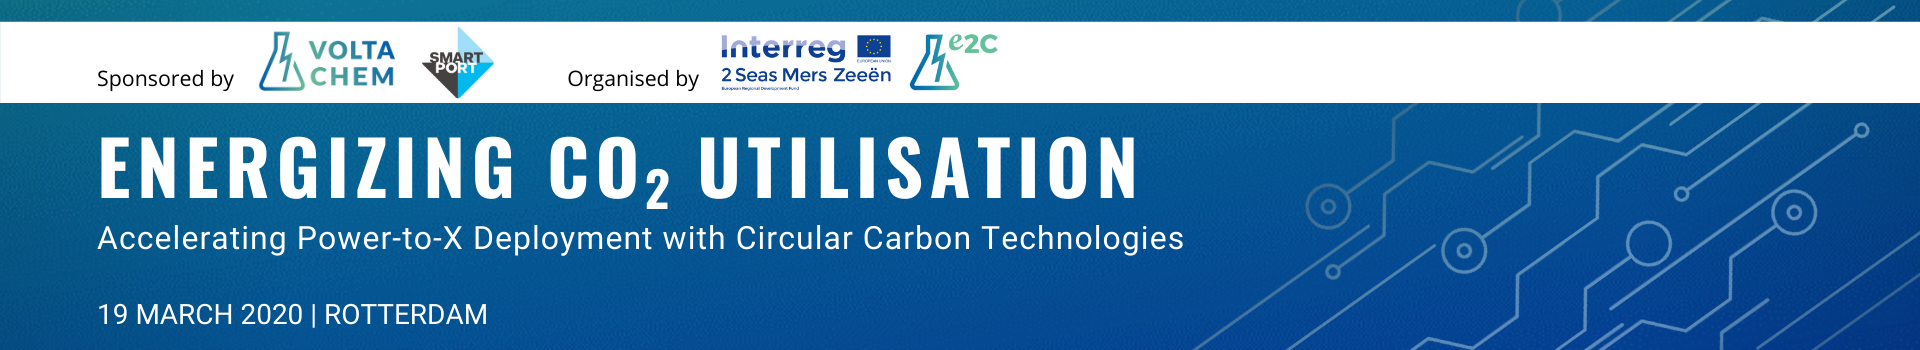 "E2C Stakeholder Event - ""Energizing CO2 Utilisation"""